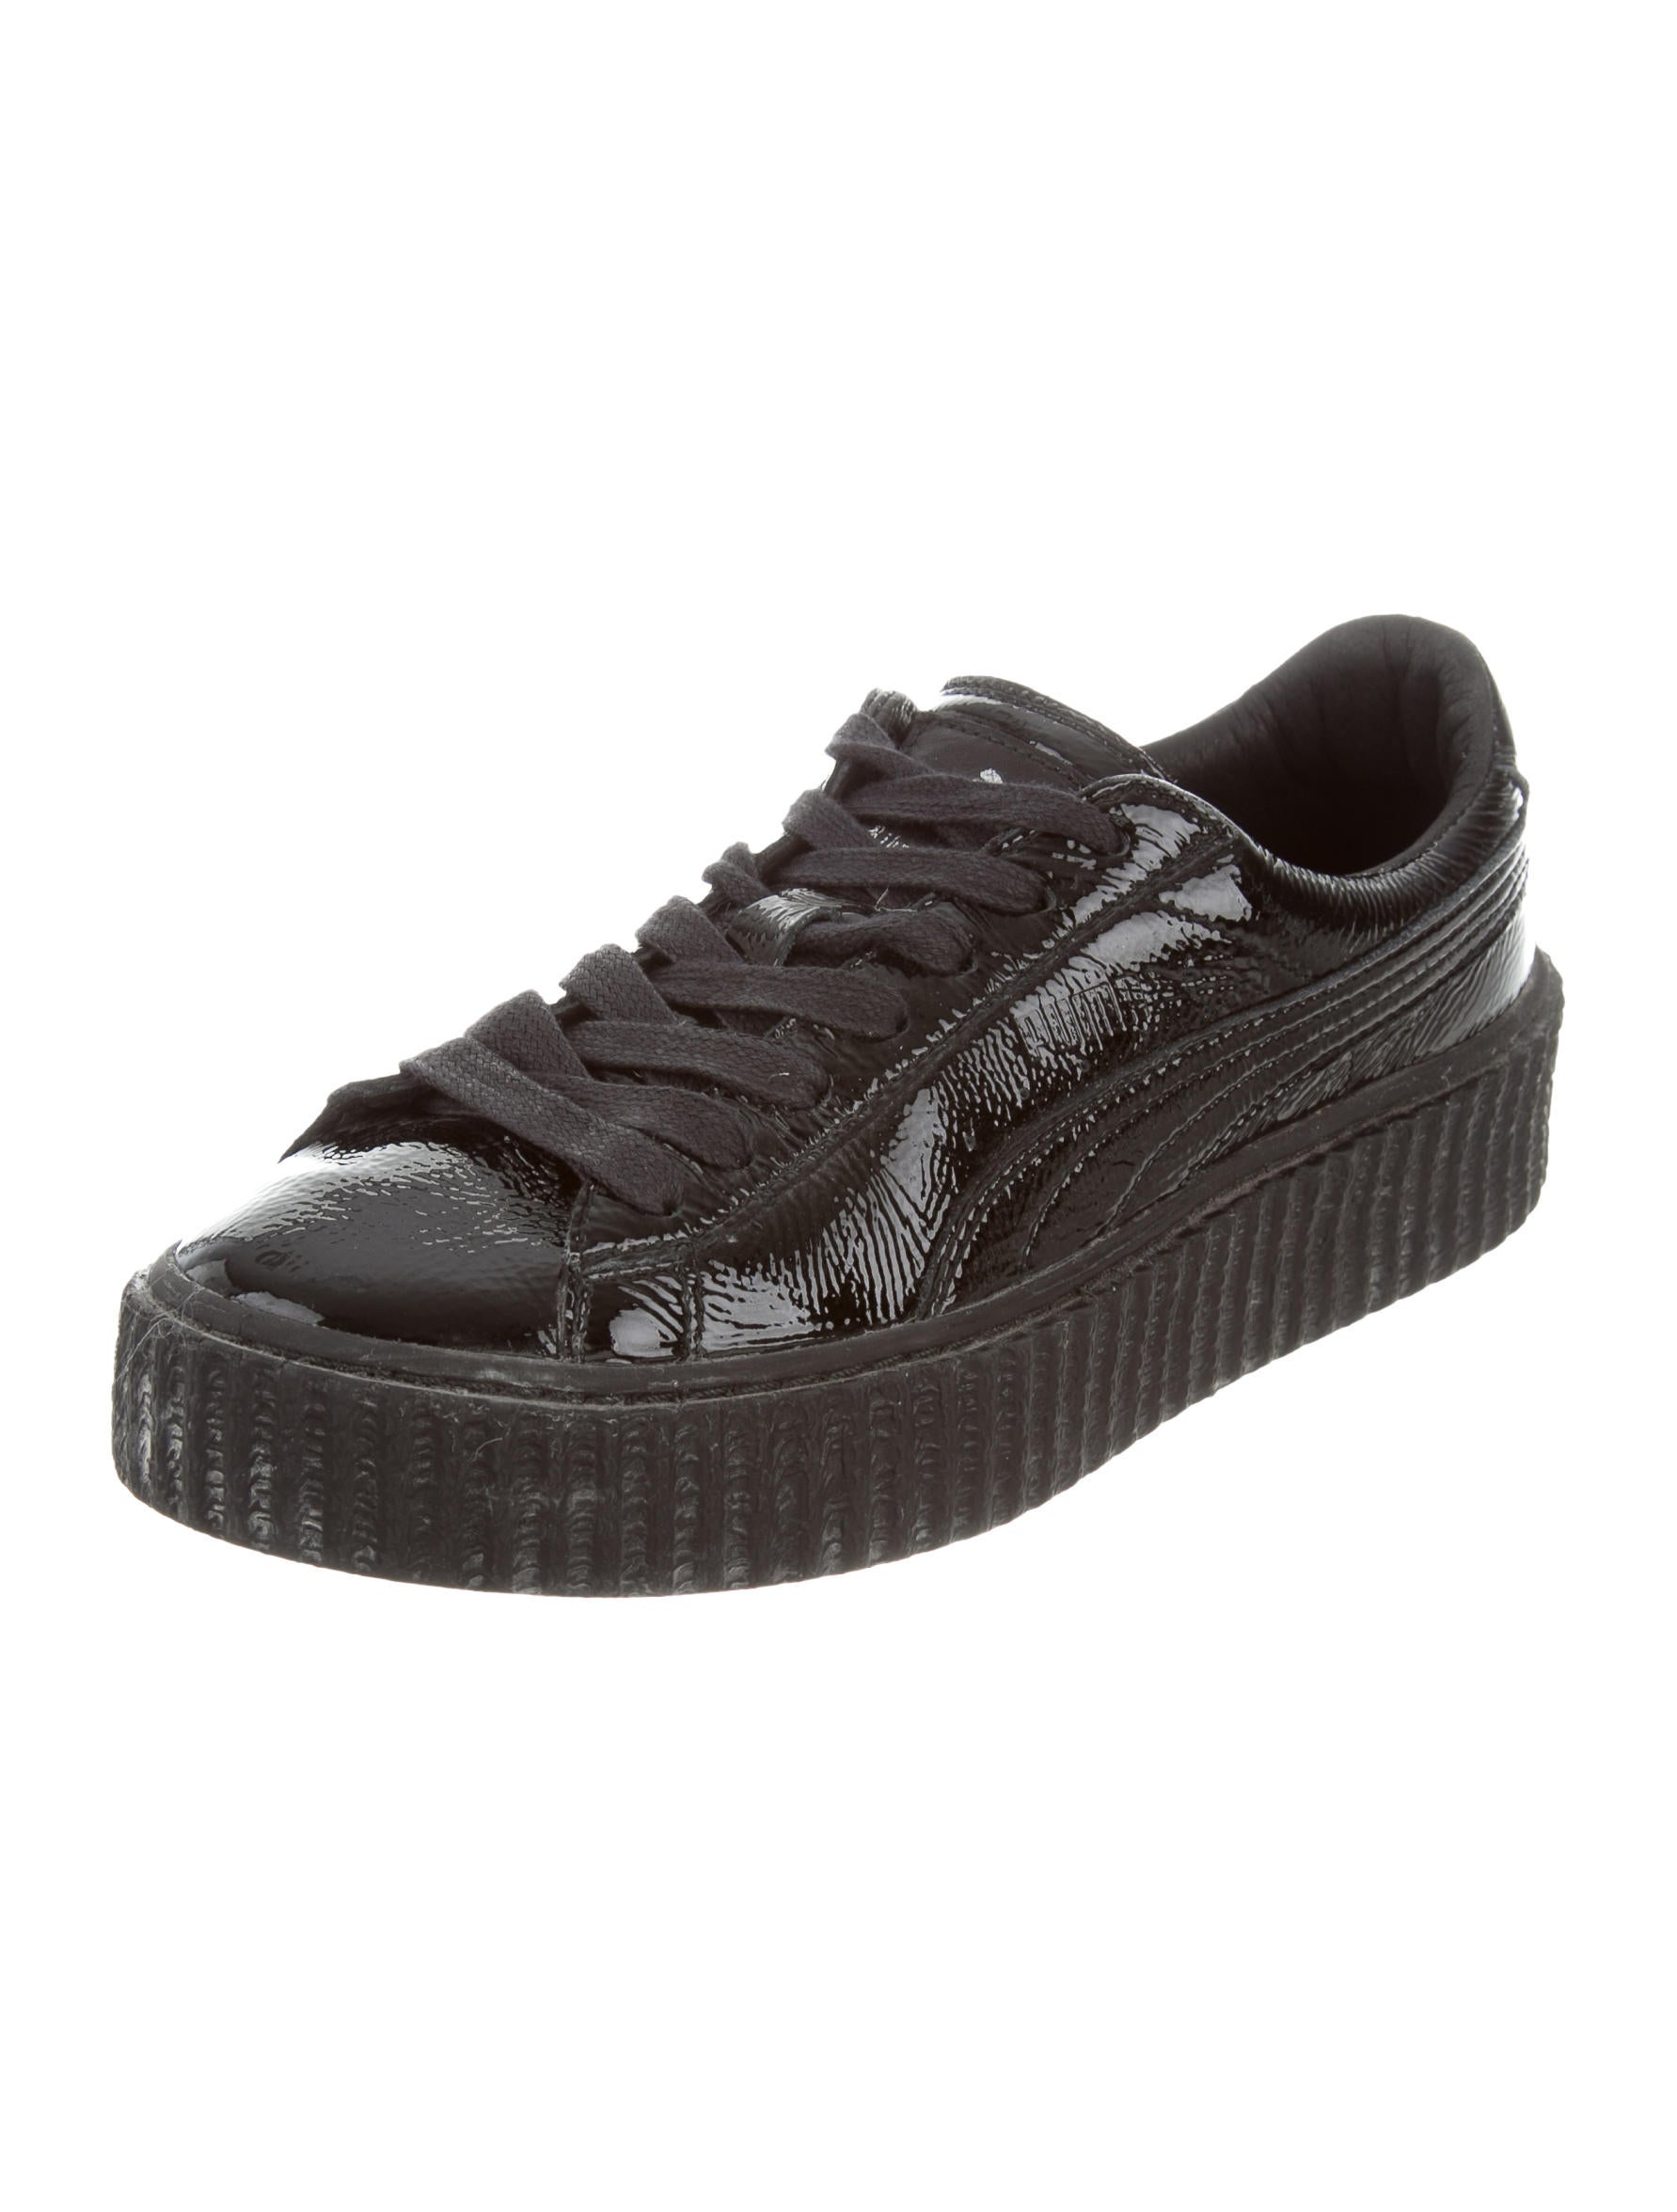 T.U.K. Black Hologram Patent 3-Buckle Pointed Creepers cuz you're dope af! Get to steppin' with these vegan patent leather creepers that have a black hologram detail all ova, comfy rubber soles and buckle closures on the tanahlot.tk: T.U.K.